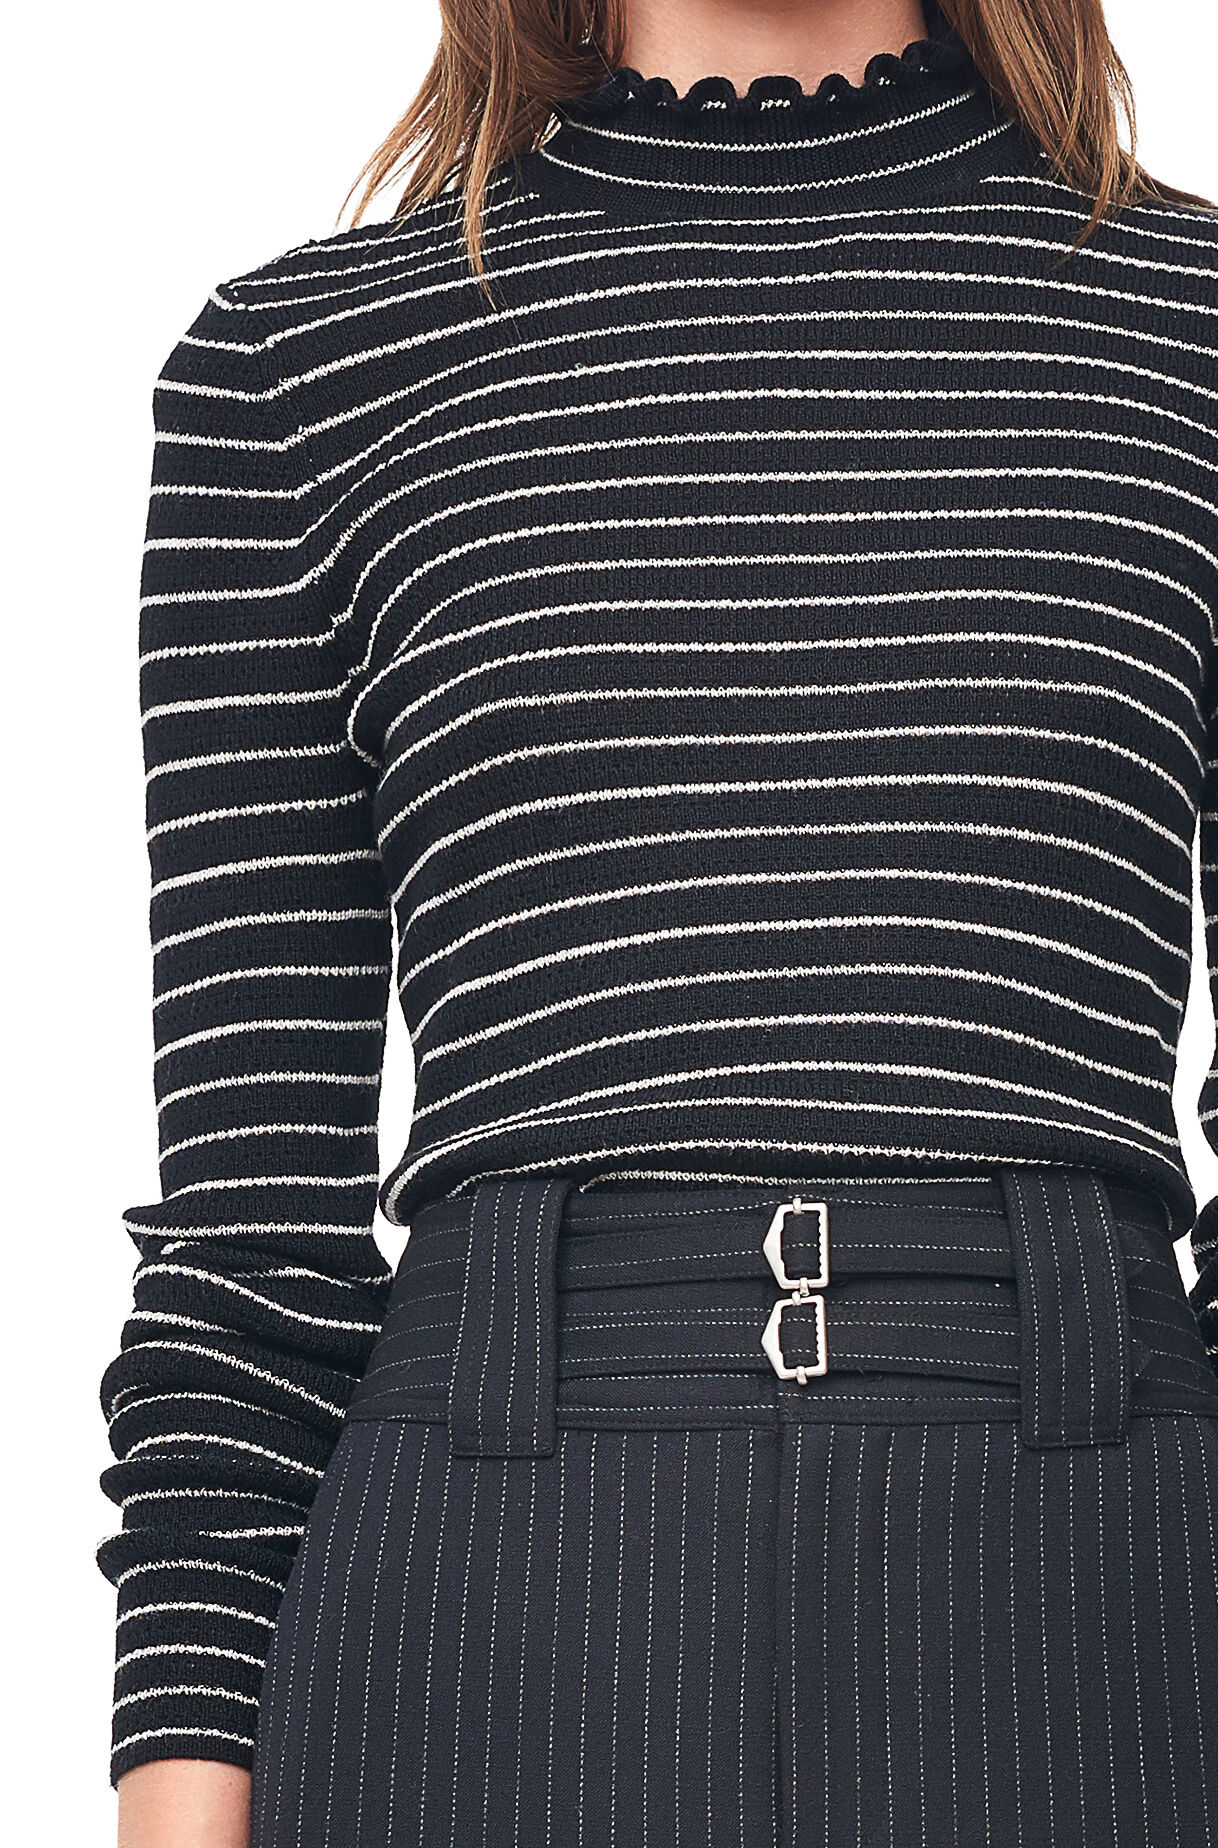 Merino Wool Turtleneck Pullover | Rebecca Taylor